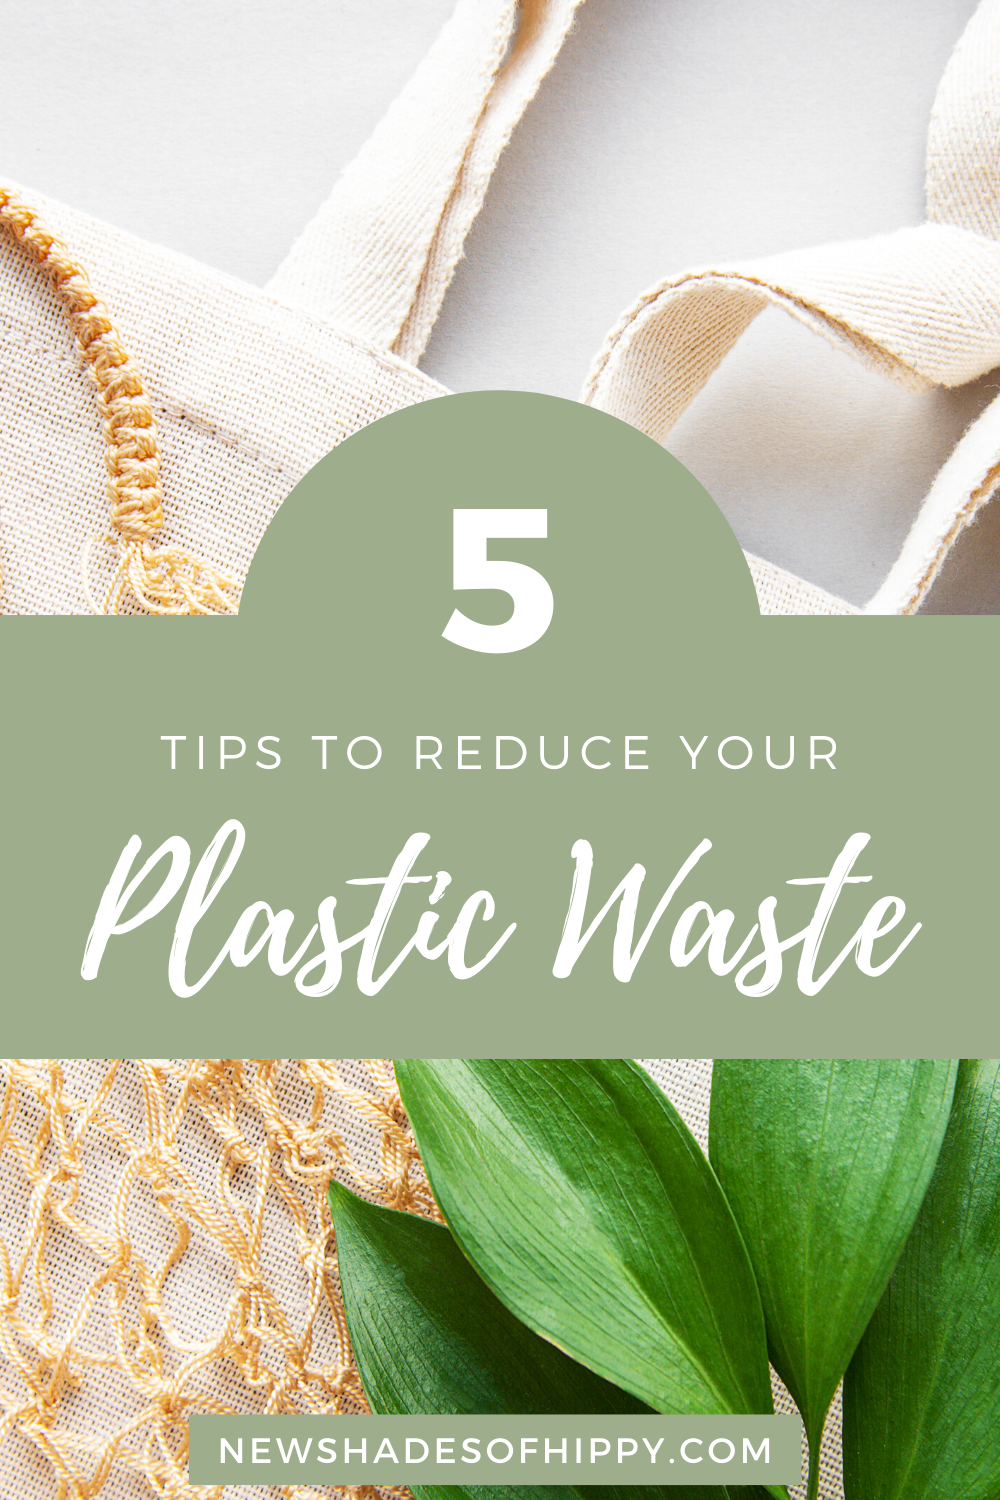 5 Tips To Reduce Your Plastic Waste - New Shades of Hippy Pinterest